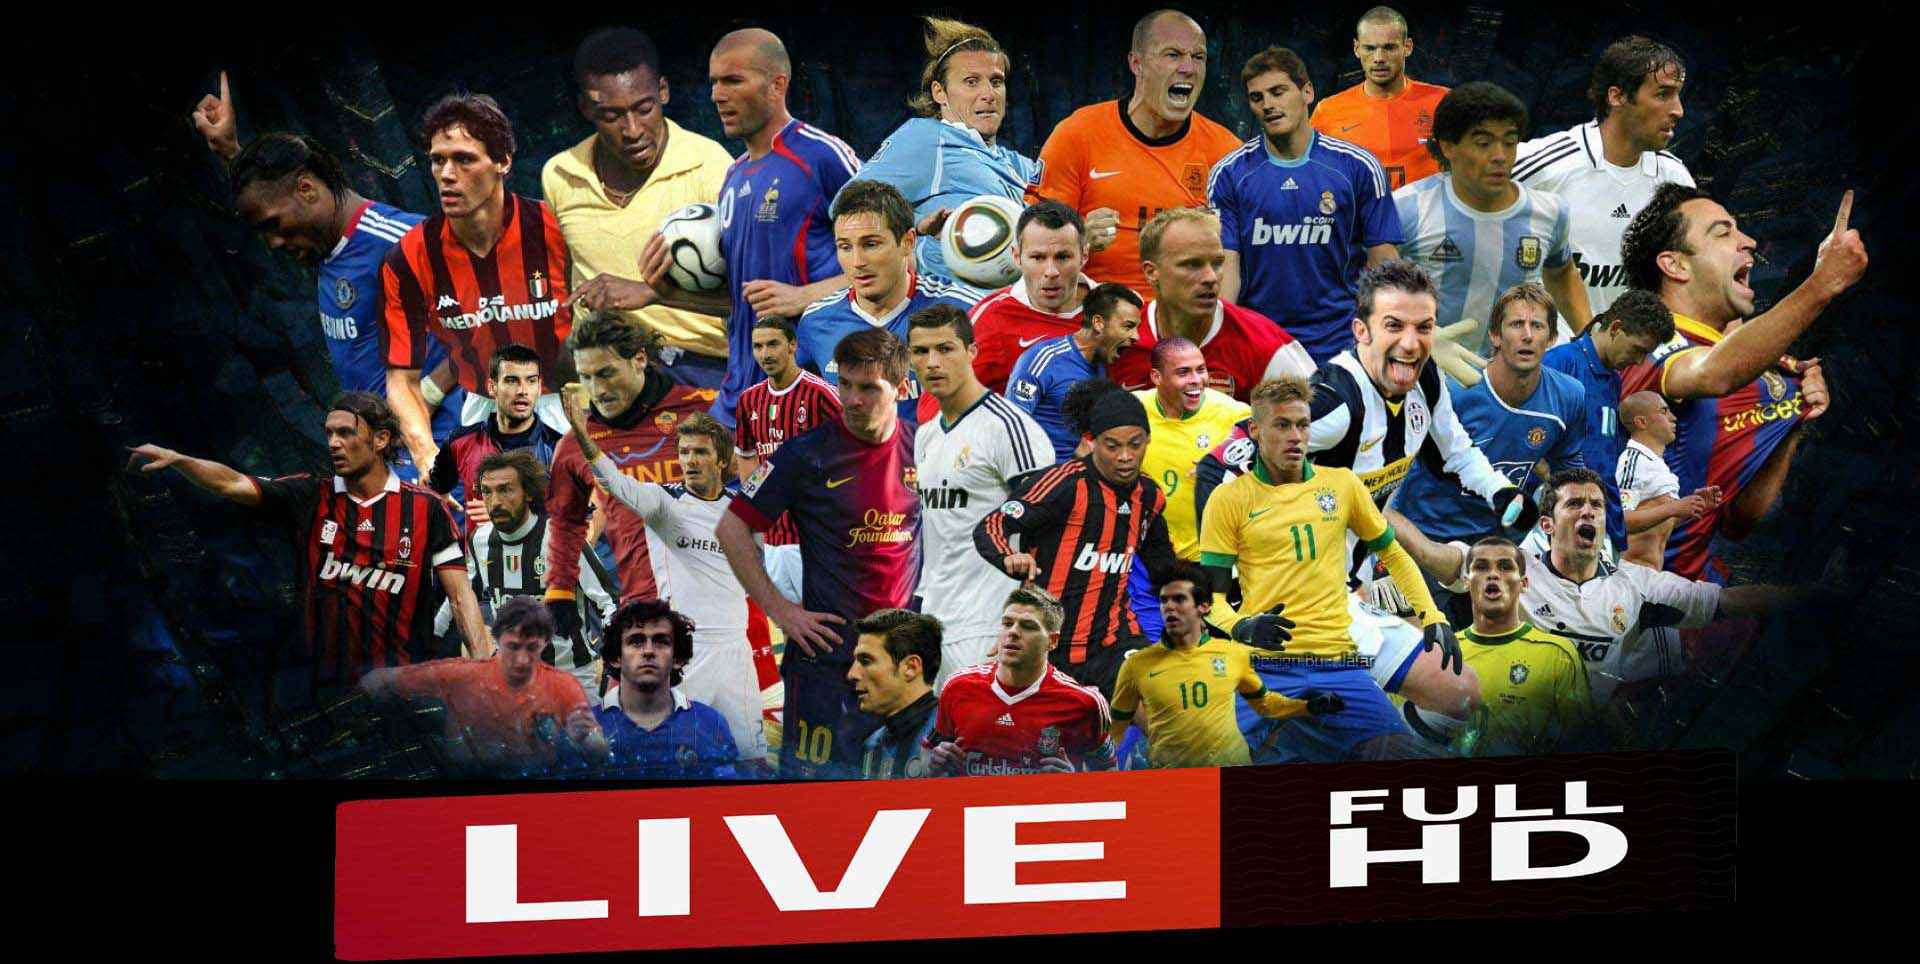 Real Madrid vs Atletico Madrid live